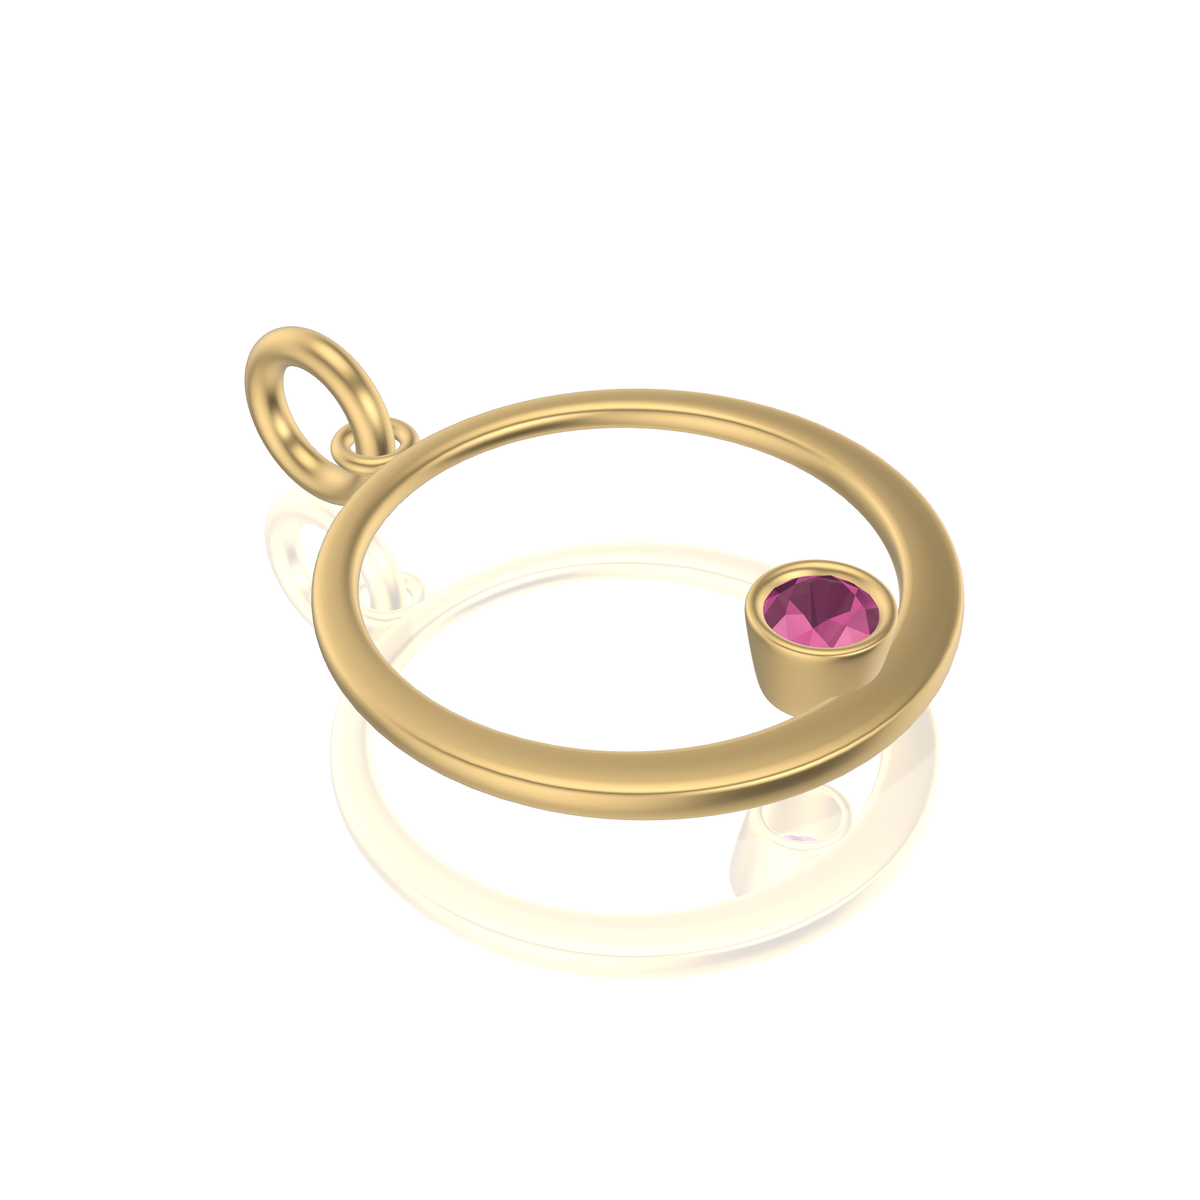 Mothers Circle Framed Charm | Gold Pendant, Large | Pink Or Purple Garnet Or Spinel